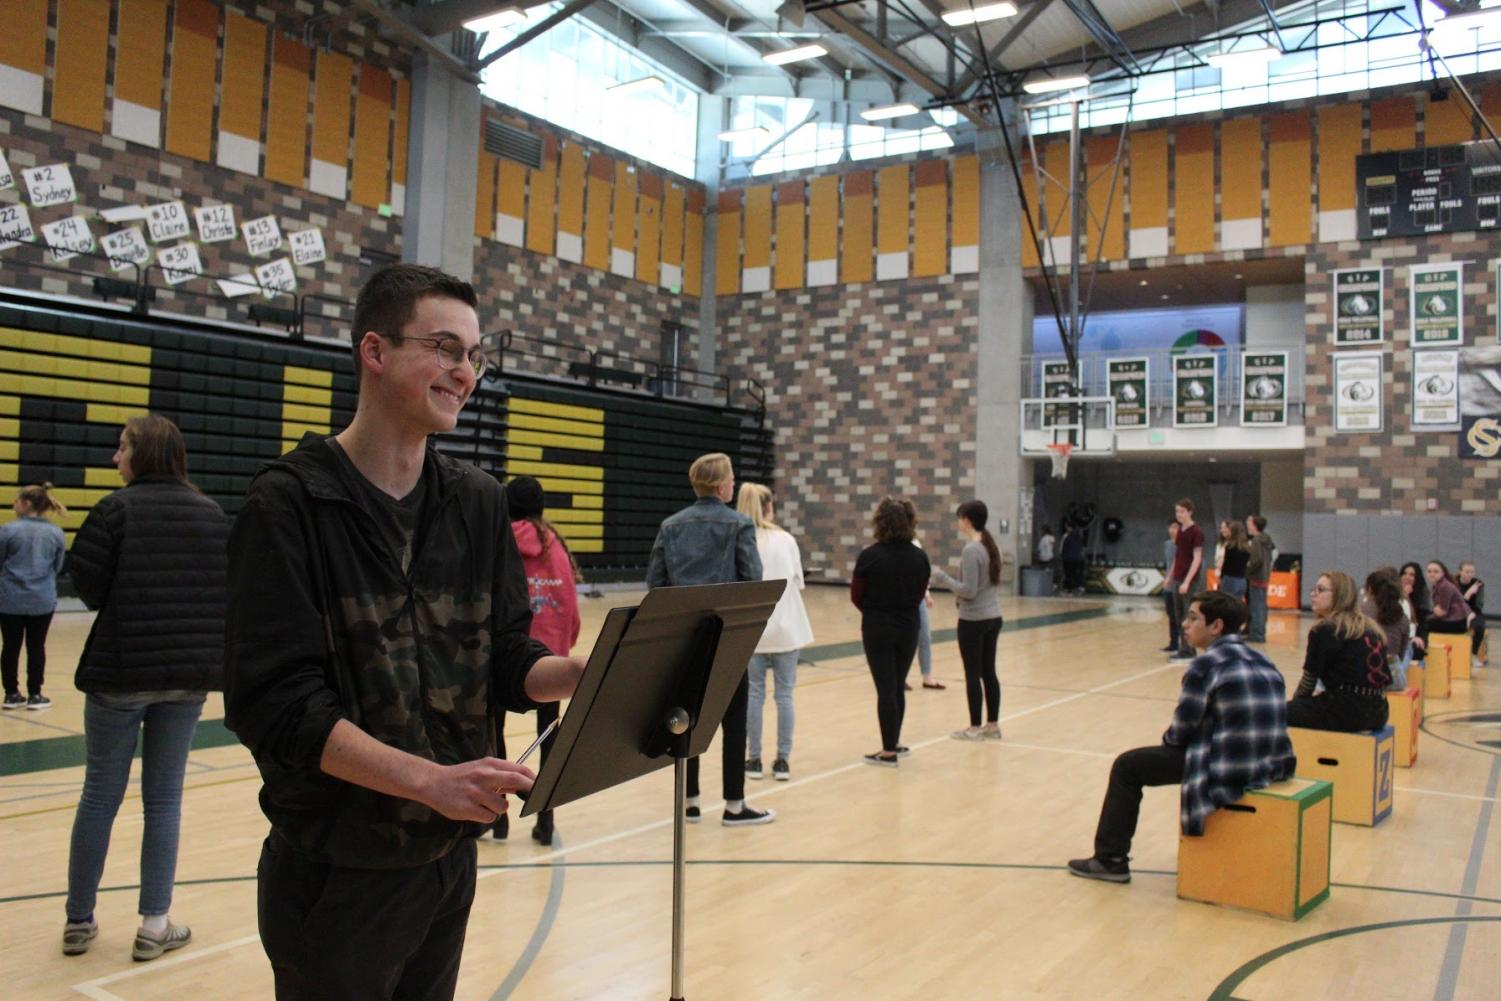 Junior+Nicholas+Tappin+helps+conduct+the+pit+orchestra+as+the+Matilda+cast+rehearses+in+the+gym.+They+will+be+performing+%E2%80%9CRevolting+Children%E2%80%9D+at+the+pep+rally+on+Friday.+